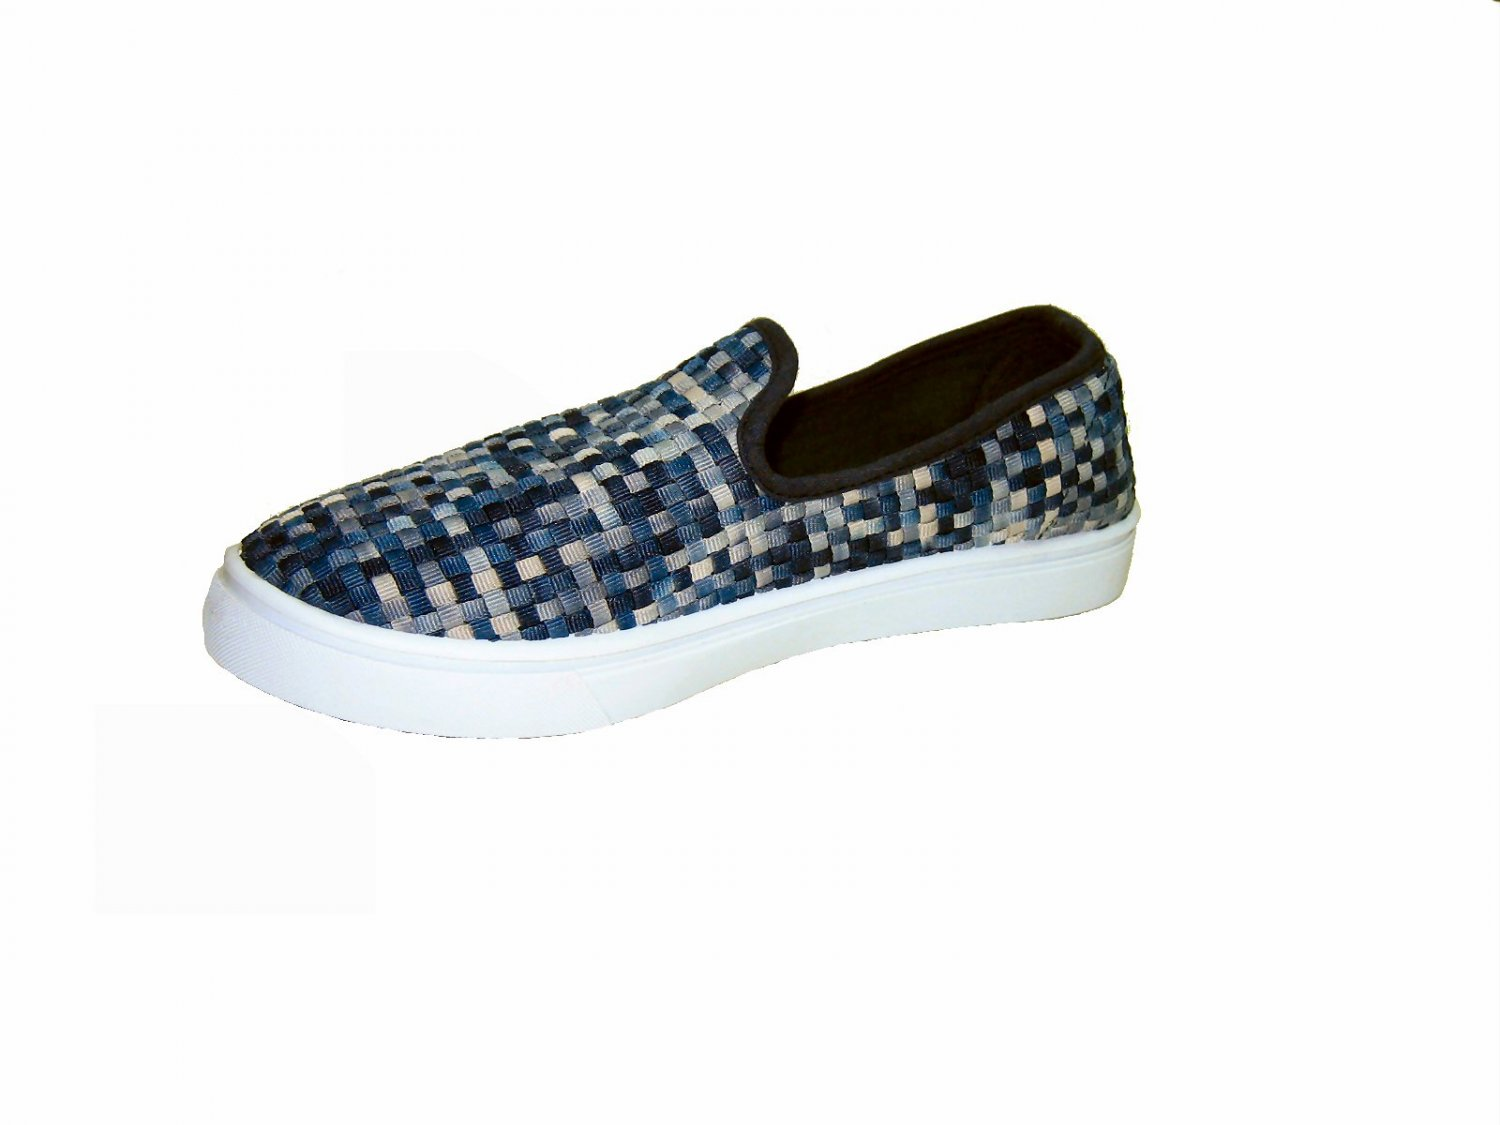 Top Moda AD-53 women's vegan slip on sneakers comfort flats shoes weave pattern navy multi size 7.5